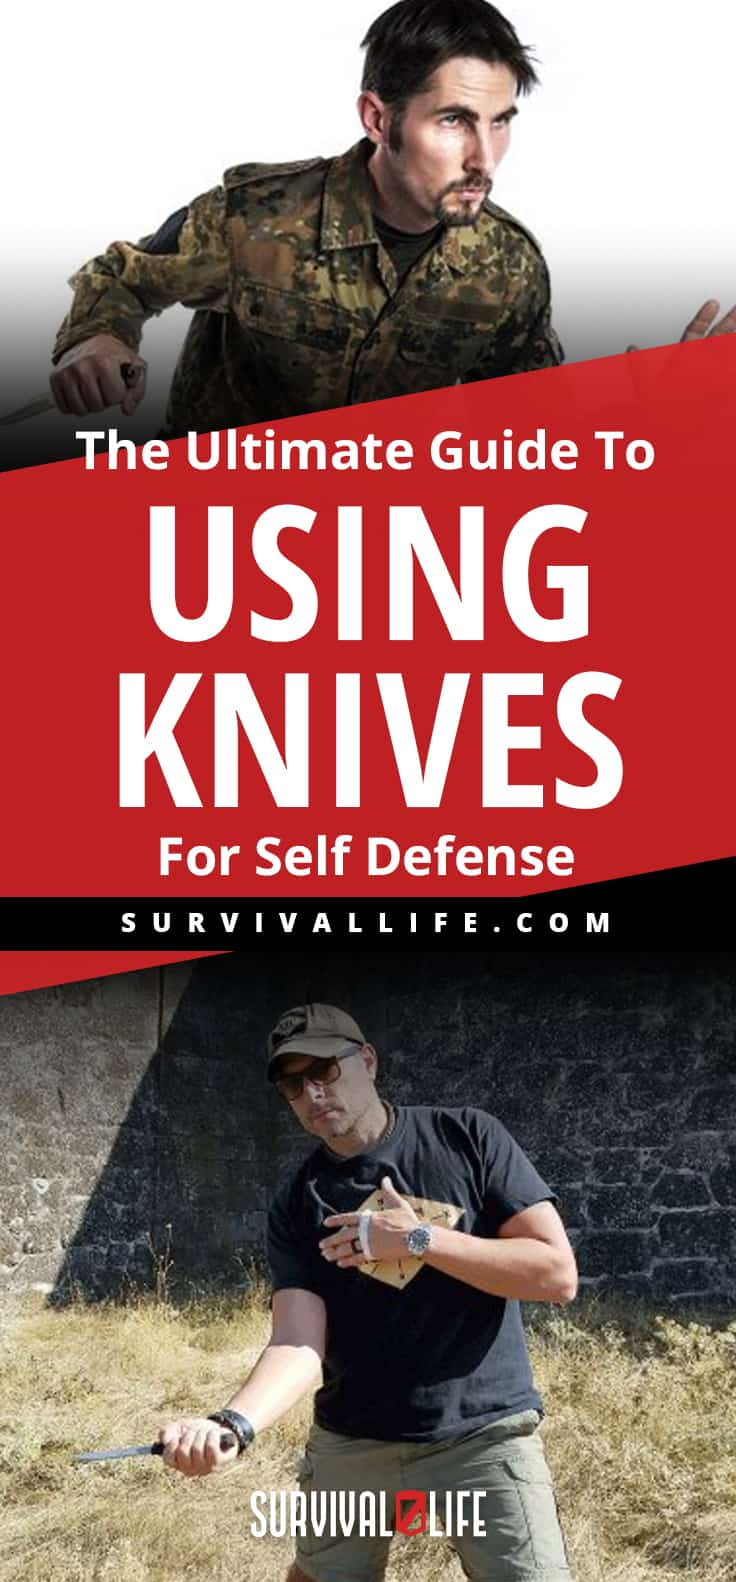 The Ultimate Guide To Using Knives For Self Defense   https://survivallife.com/using-knives-for-self-defense/